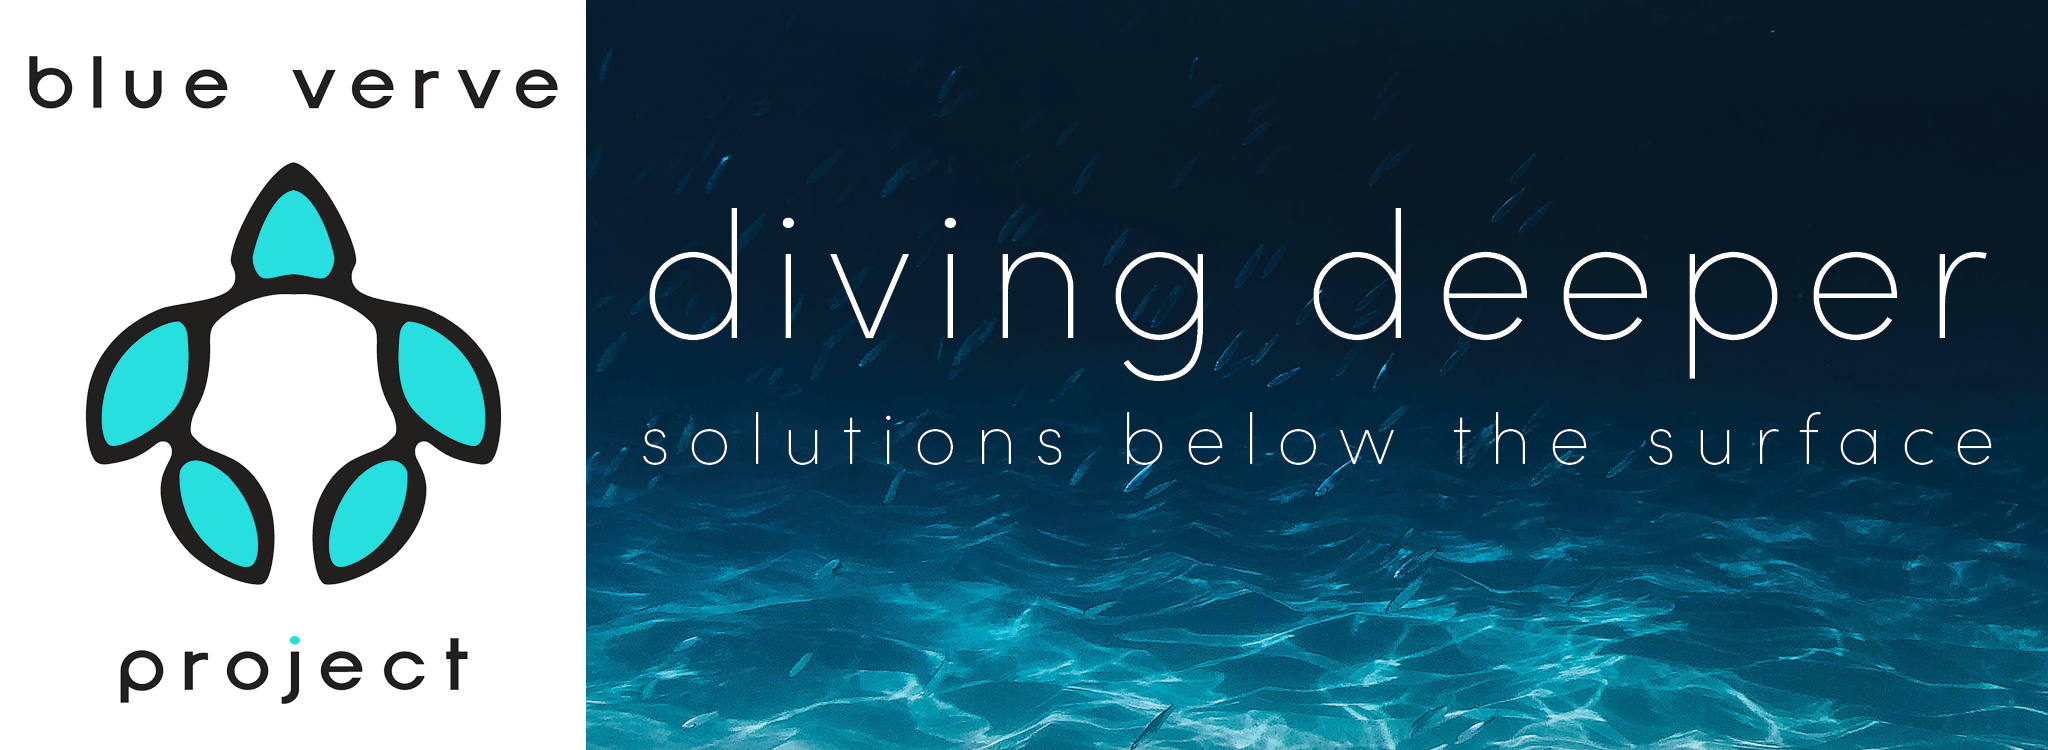 Blue Verve Project, Diving Deeper